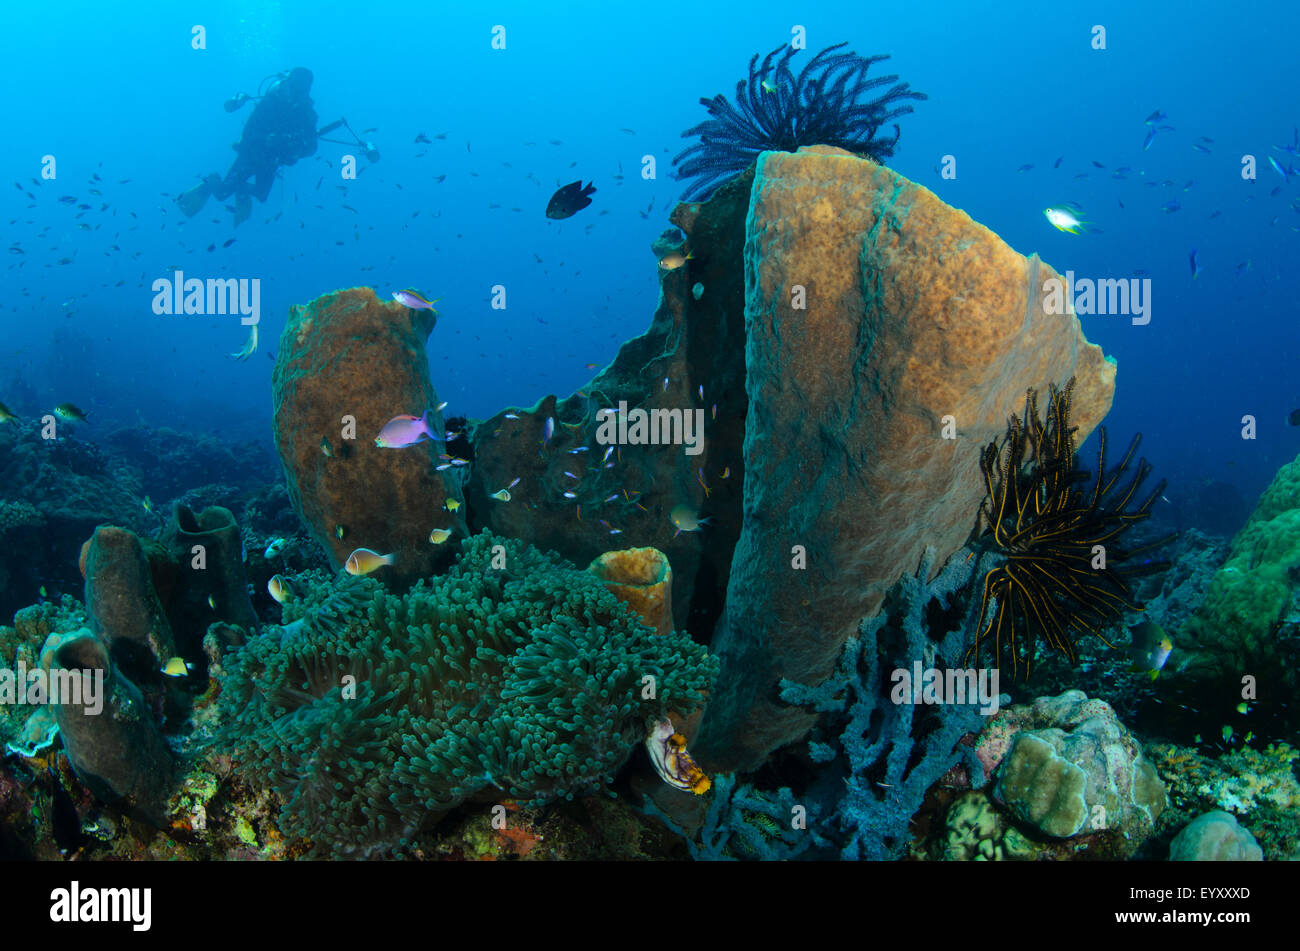 A diving photographer silhouetted in the background of a coral reef scene, Parigi Moutong, Central Sulawesi, Indonesia, - Stock Image